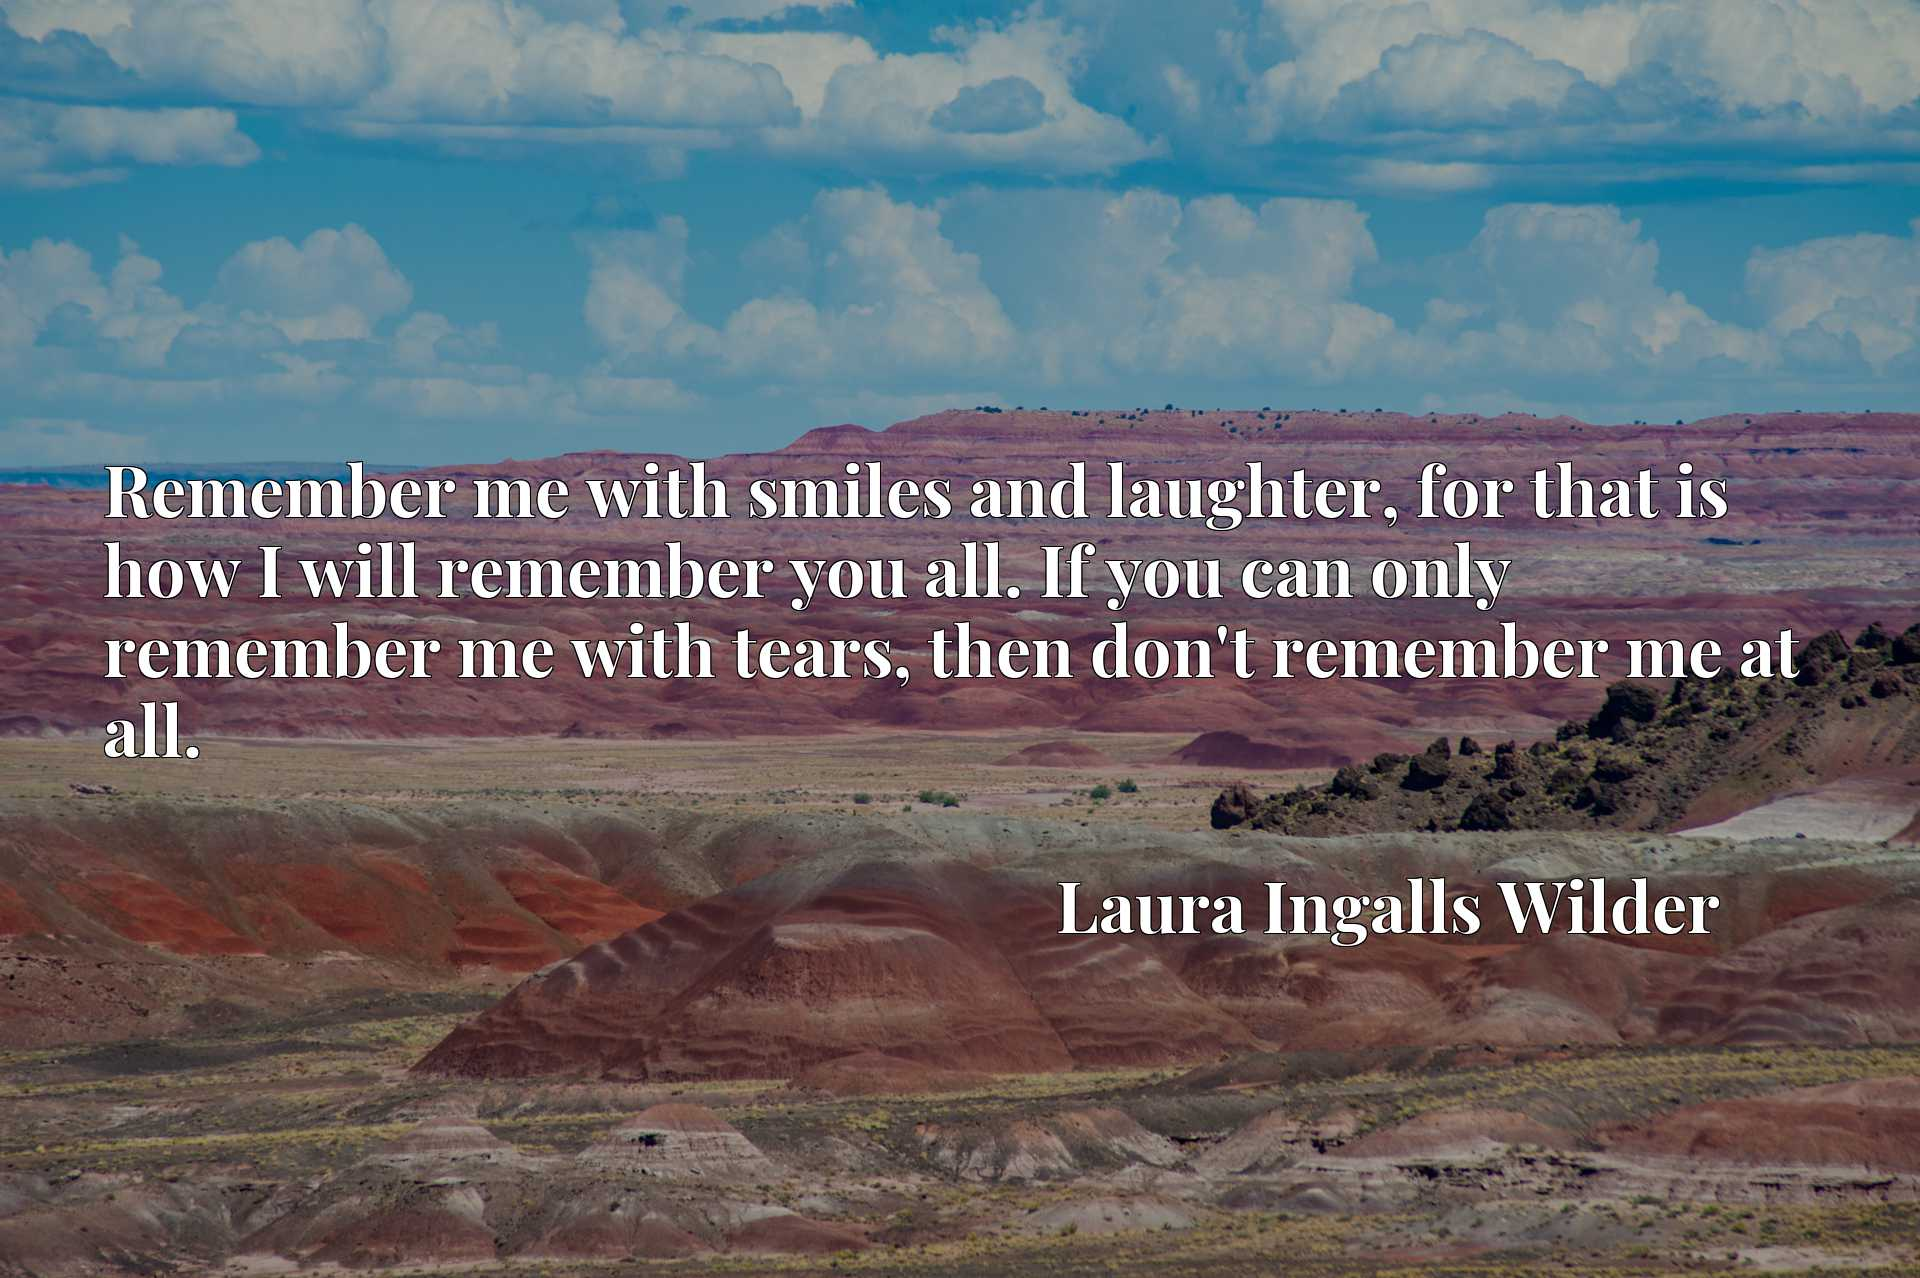 Remember me with smiles and laughter, for that is how I will remember you all. If you can only remember me with tears, then don't remember me at all.